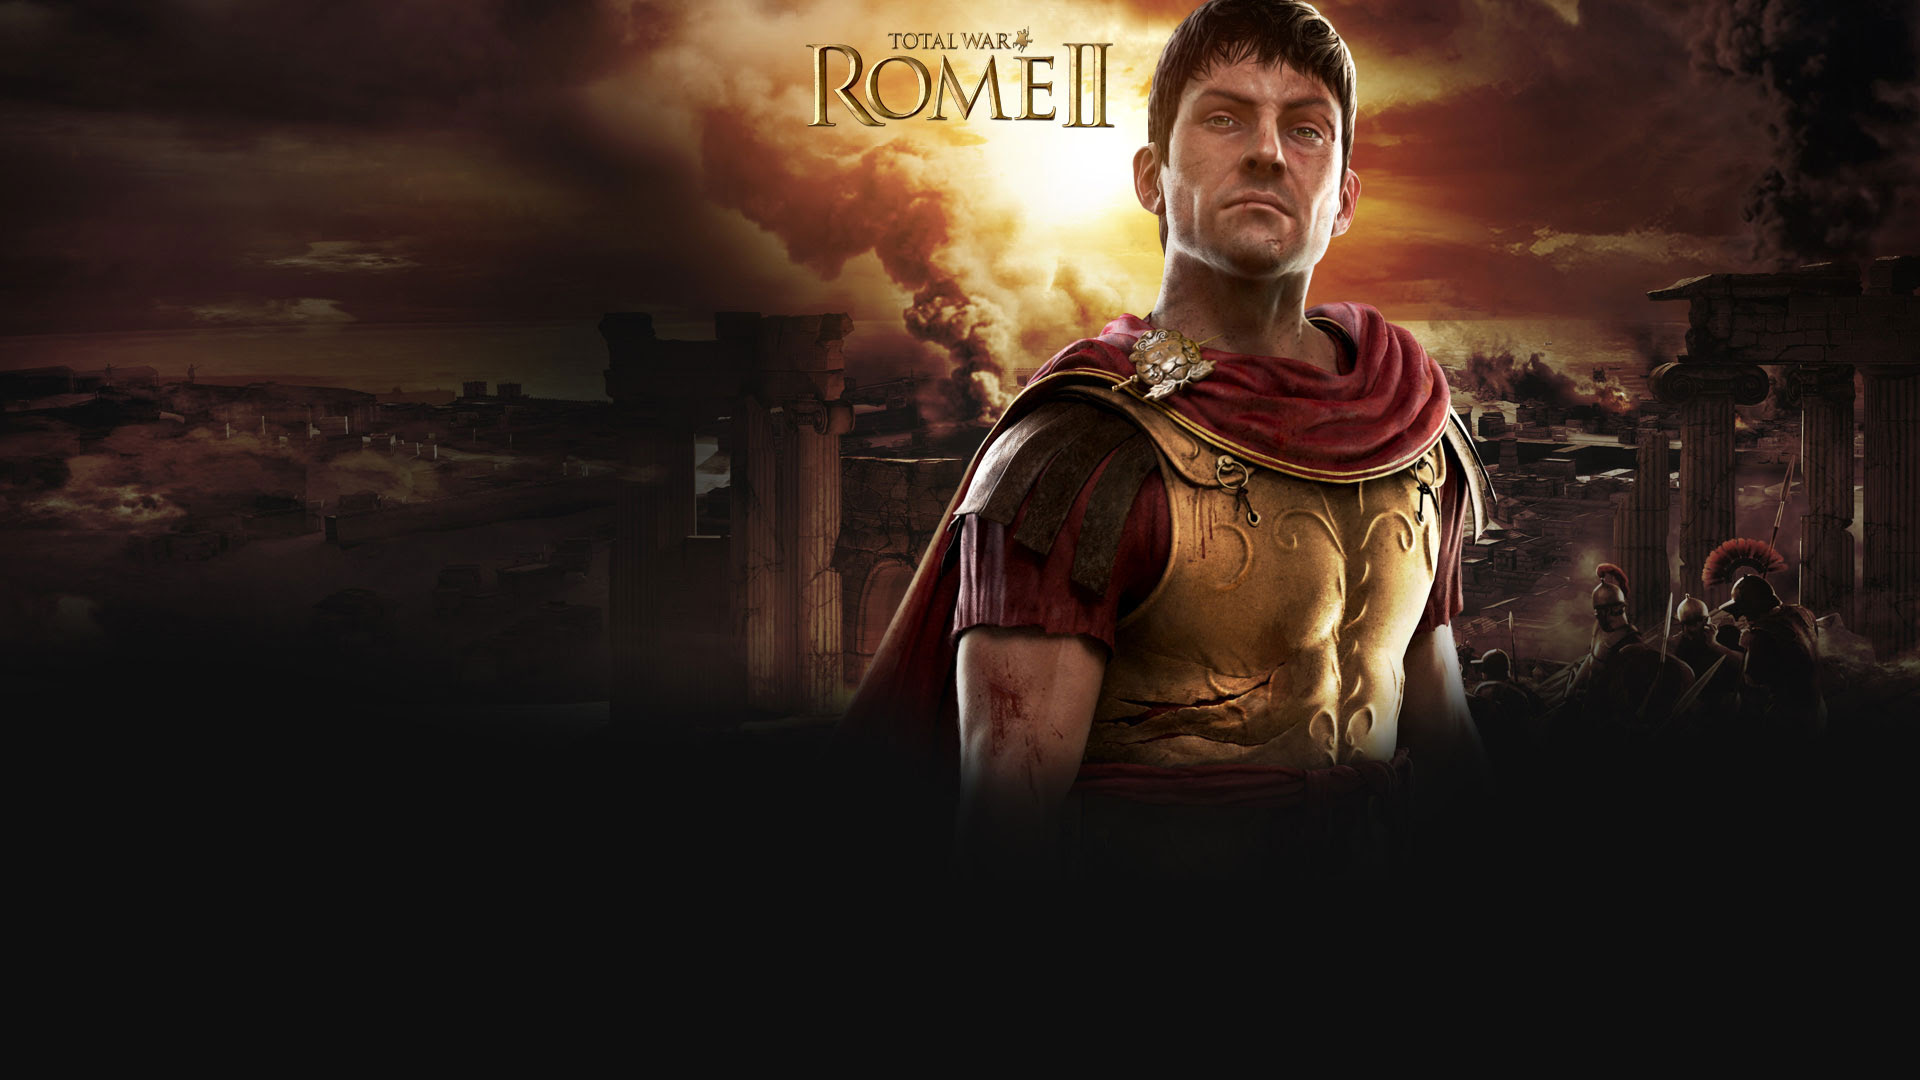 2013 Total War Rome 2 Game Wallpapers Wallpapers Hd